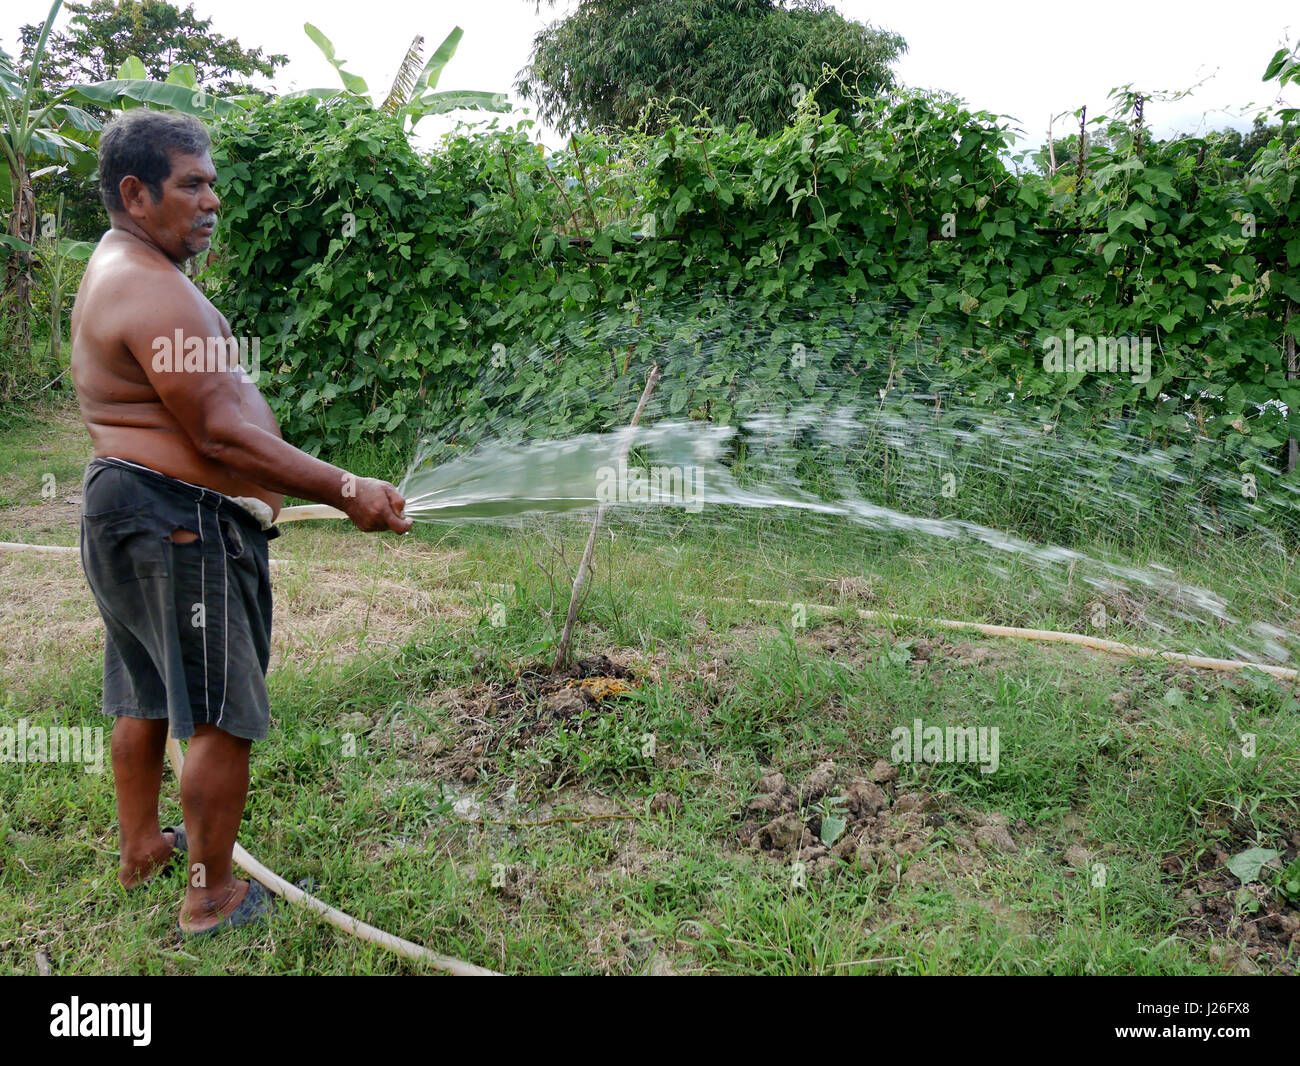 Thai Fat Man Older Work Watering To Plant And Vegetable In Garden At  Agricultural Countryside Farm On April 11, 2017 In Phatthalung Province Of  Southe